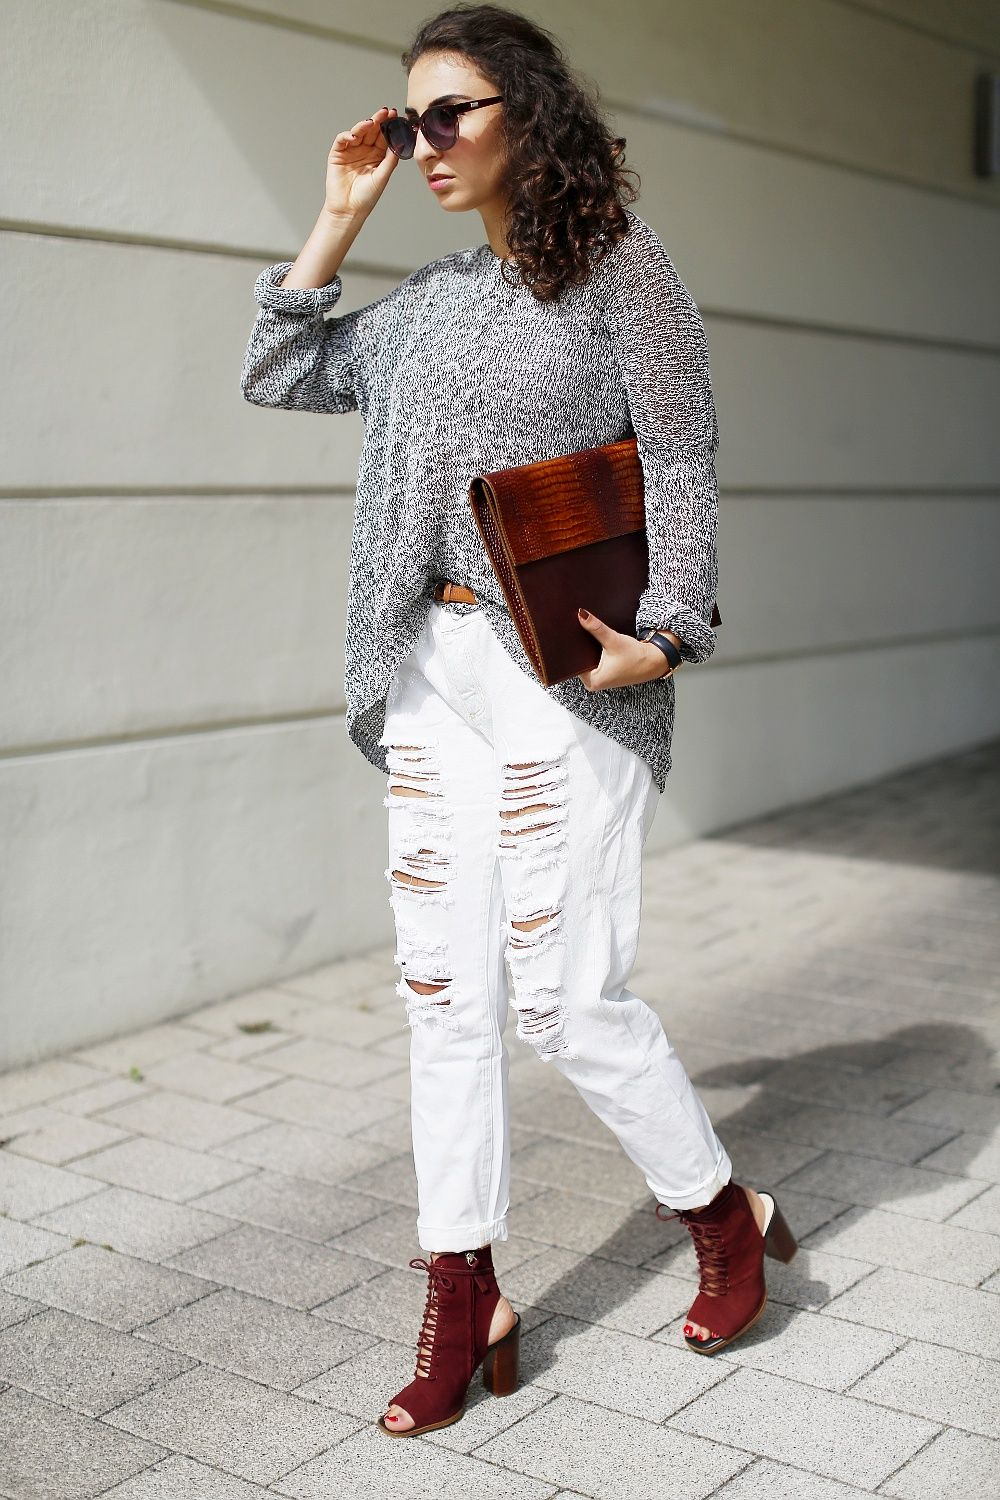 Justfab Ripped White Boyfriend Jeans Girlfriend Jeans beige pants ...